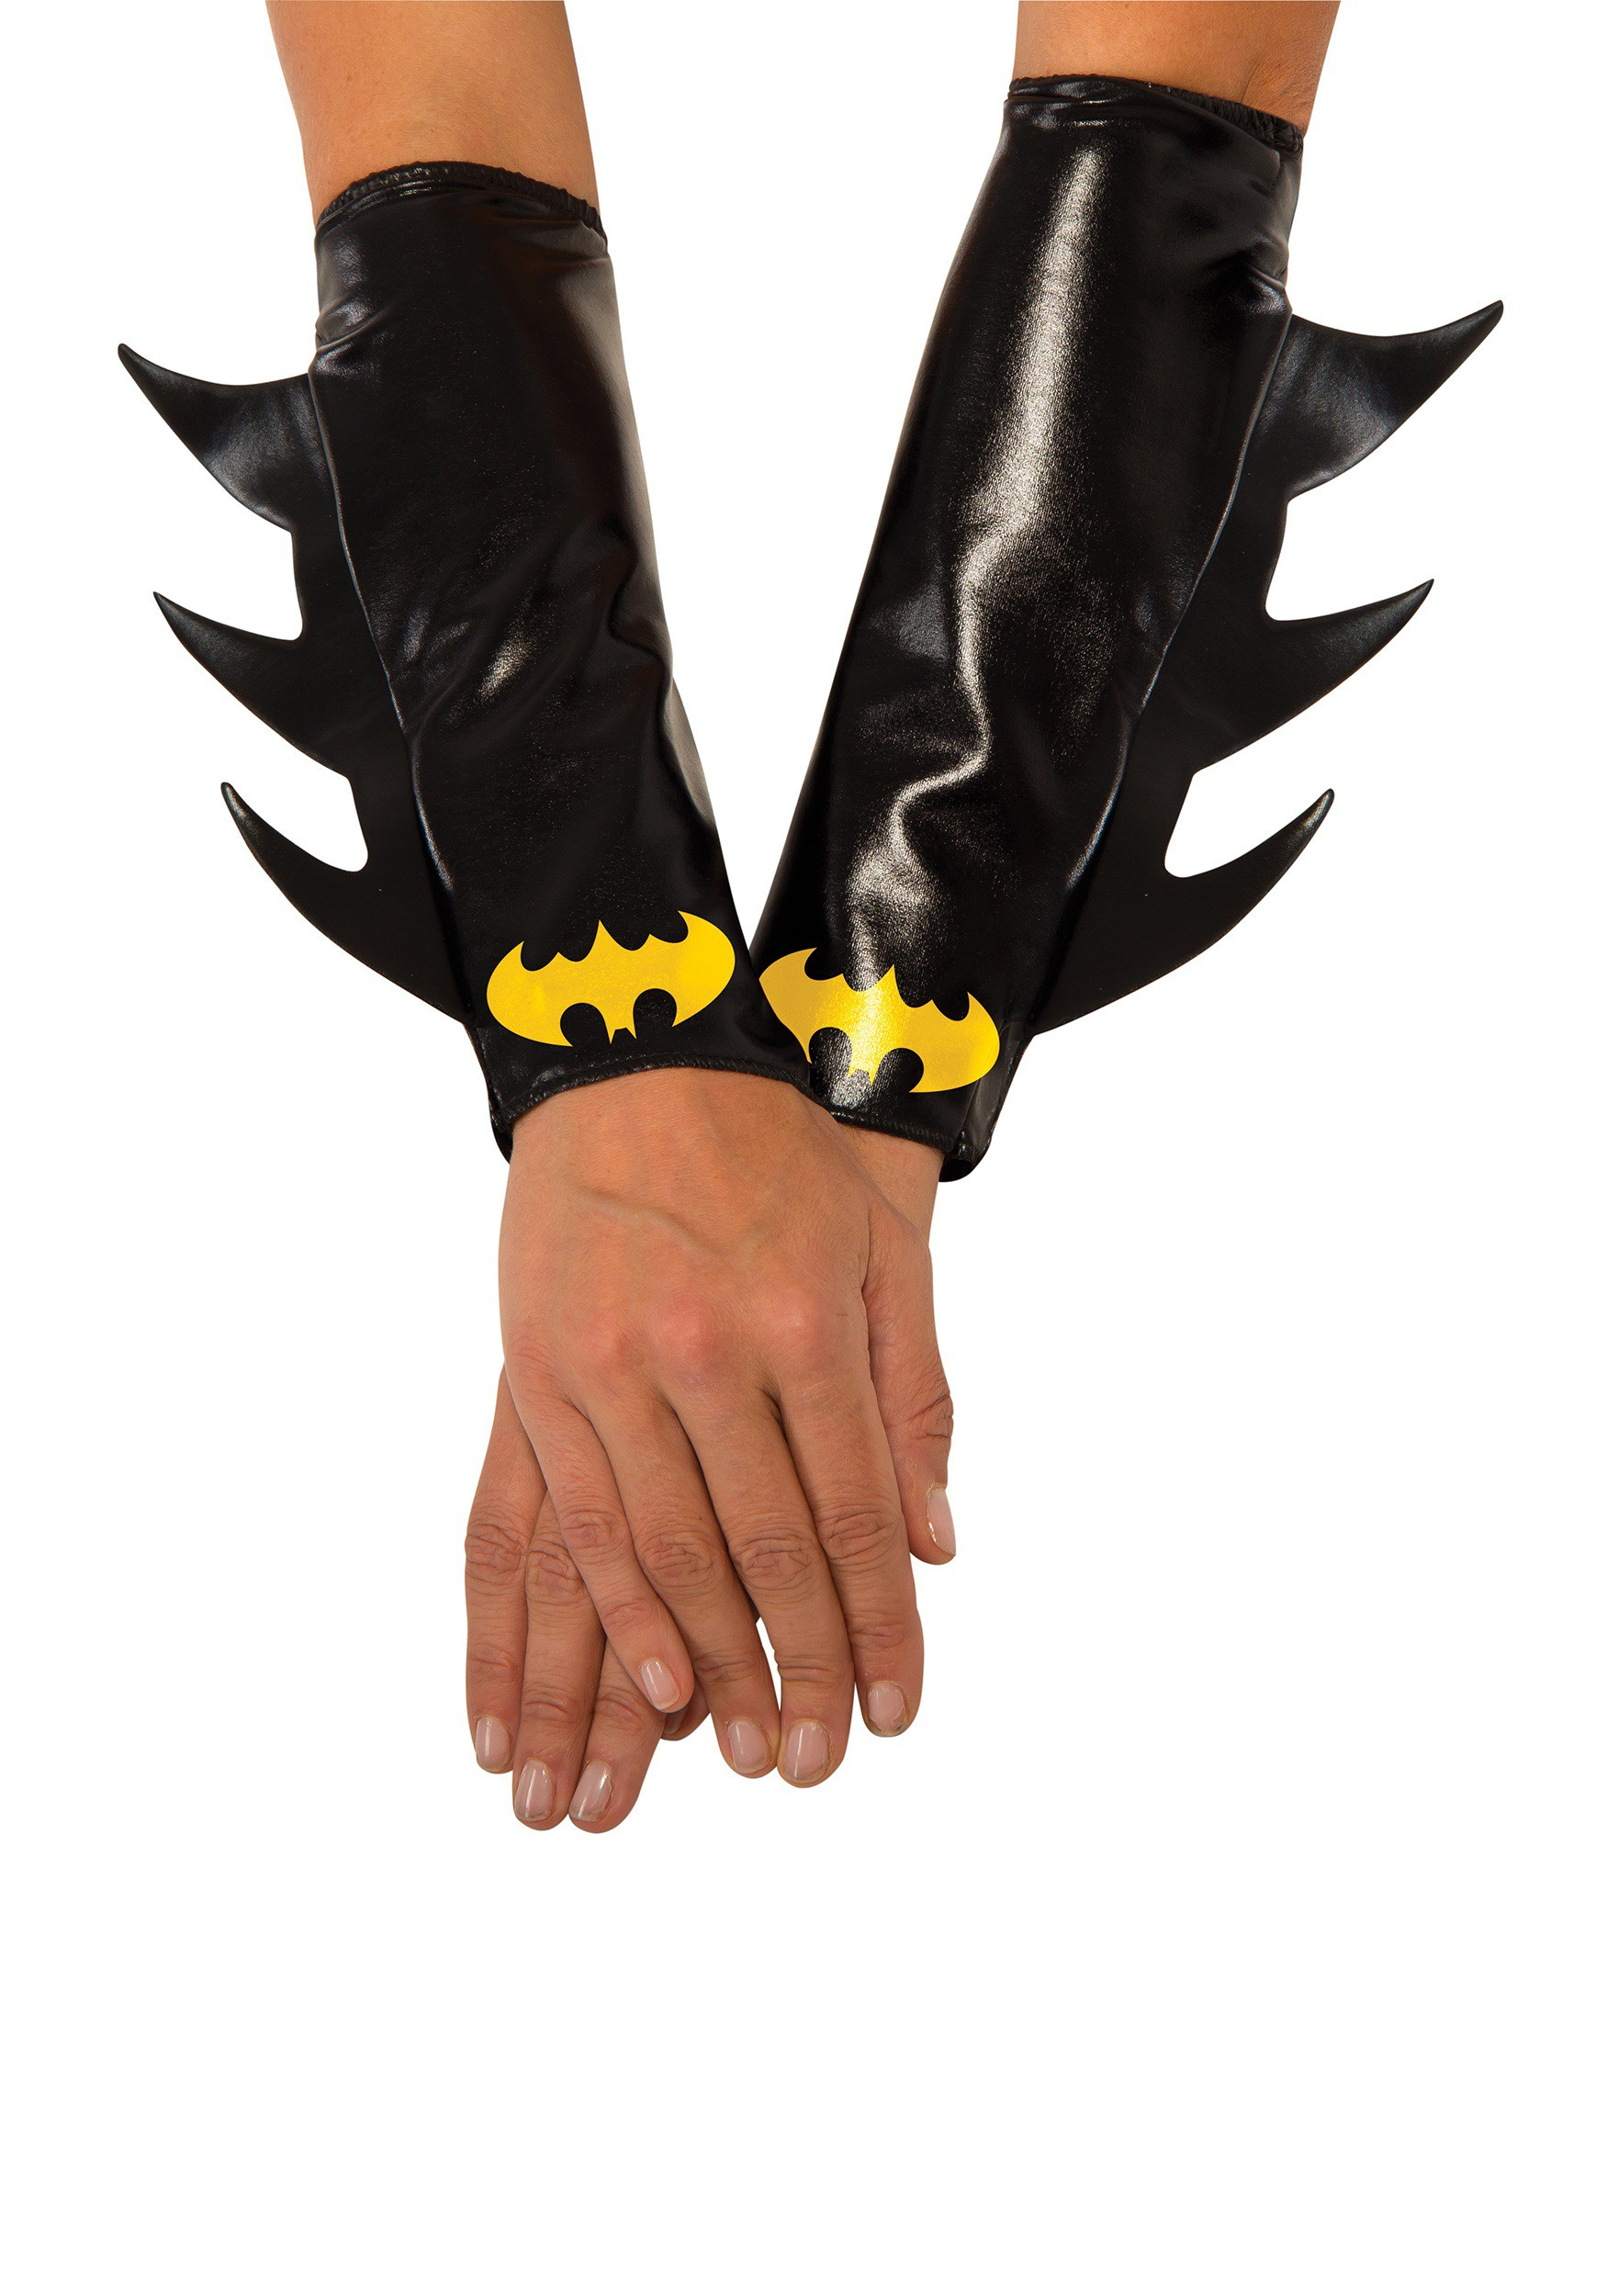 sc 1 st  Halloween Costumes : bat costume accessories  - Germanpascual.Com